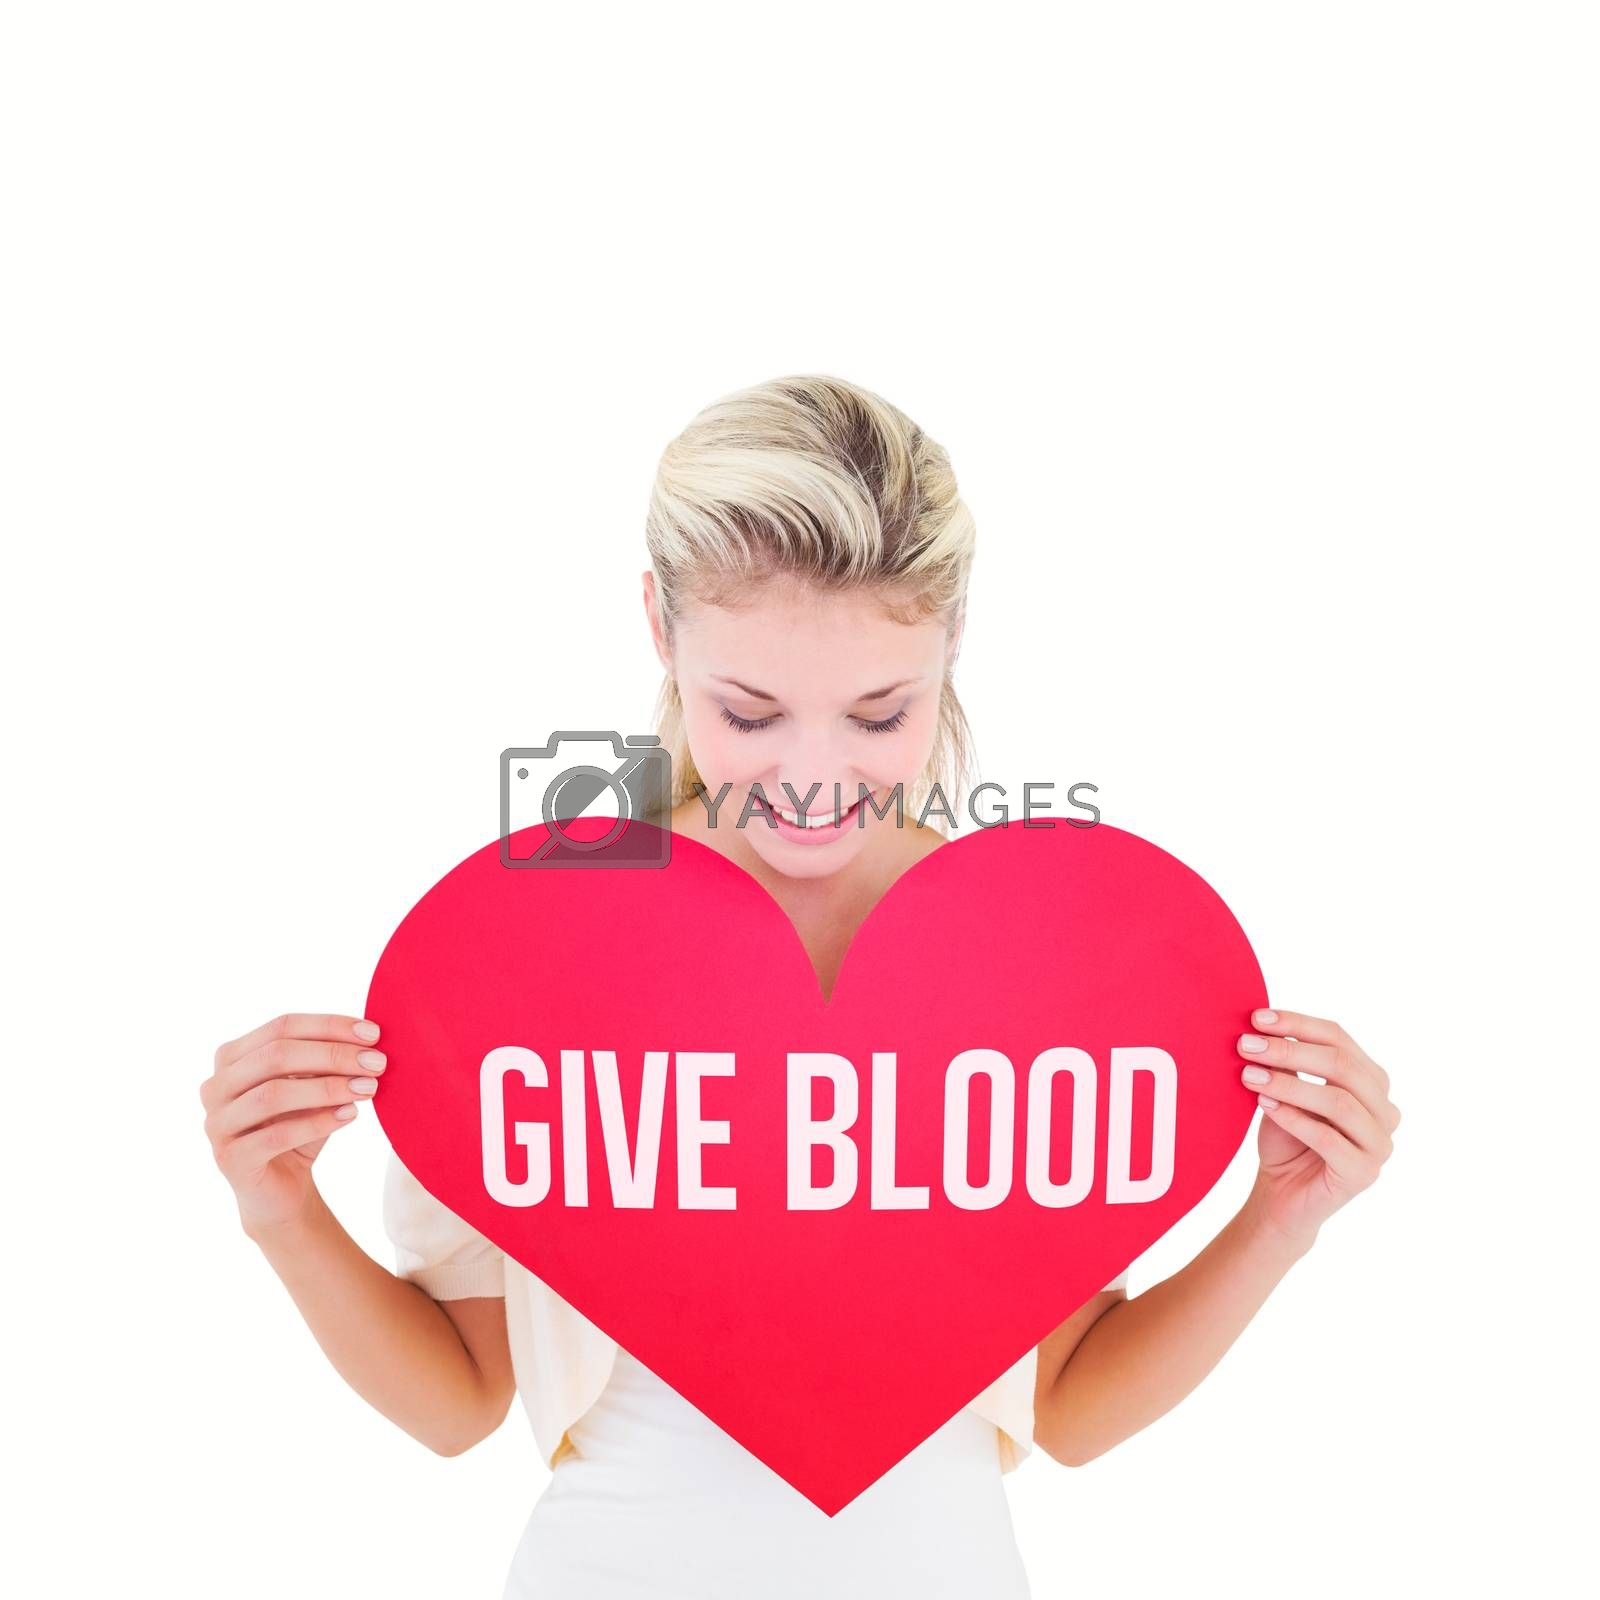 Attractive young blonde showing red heart against give blood